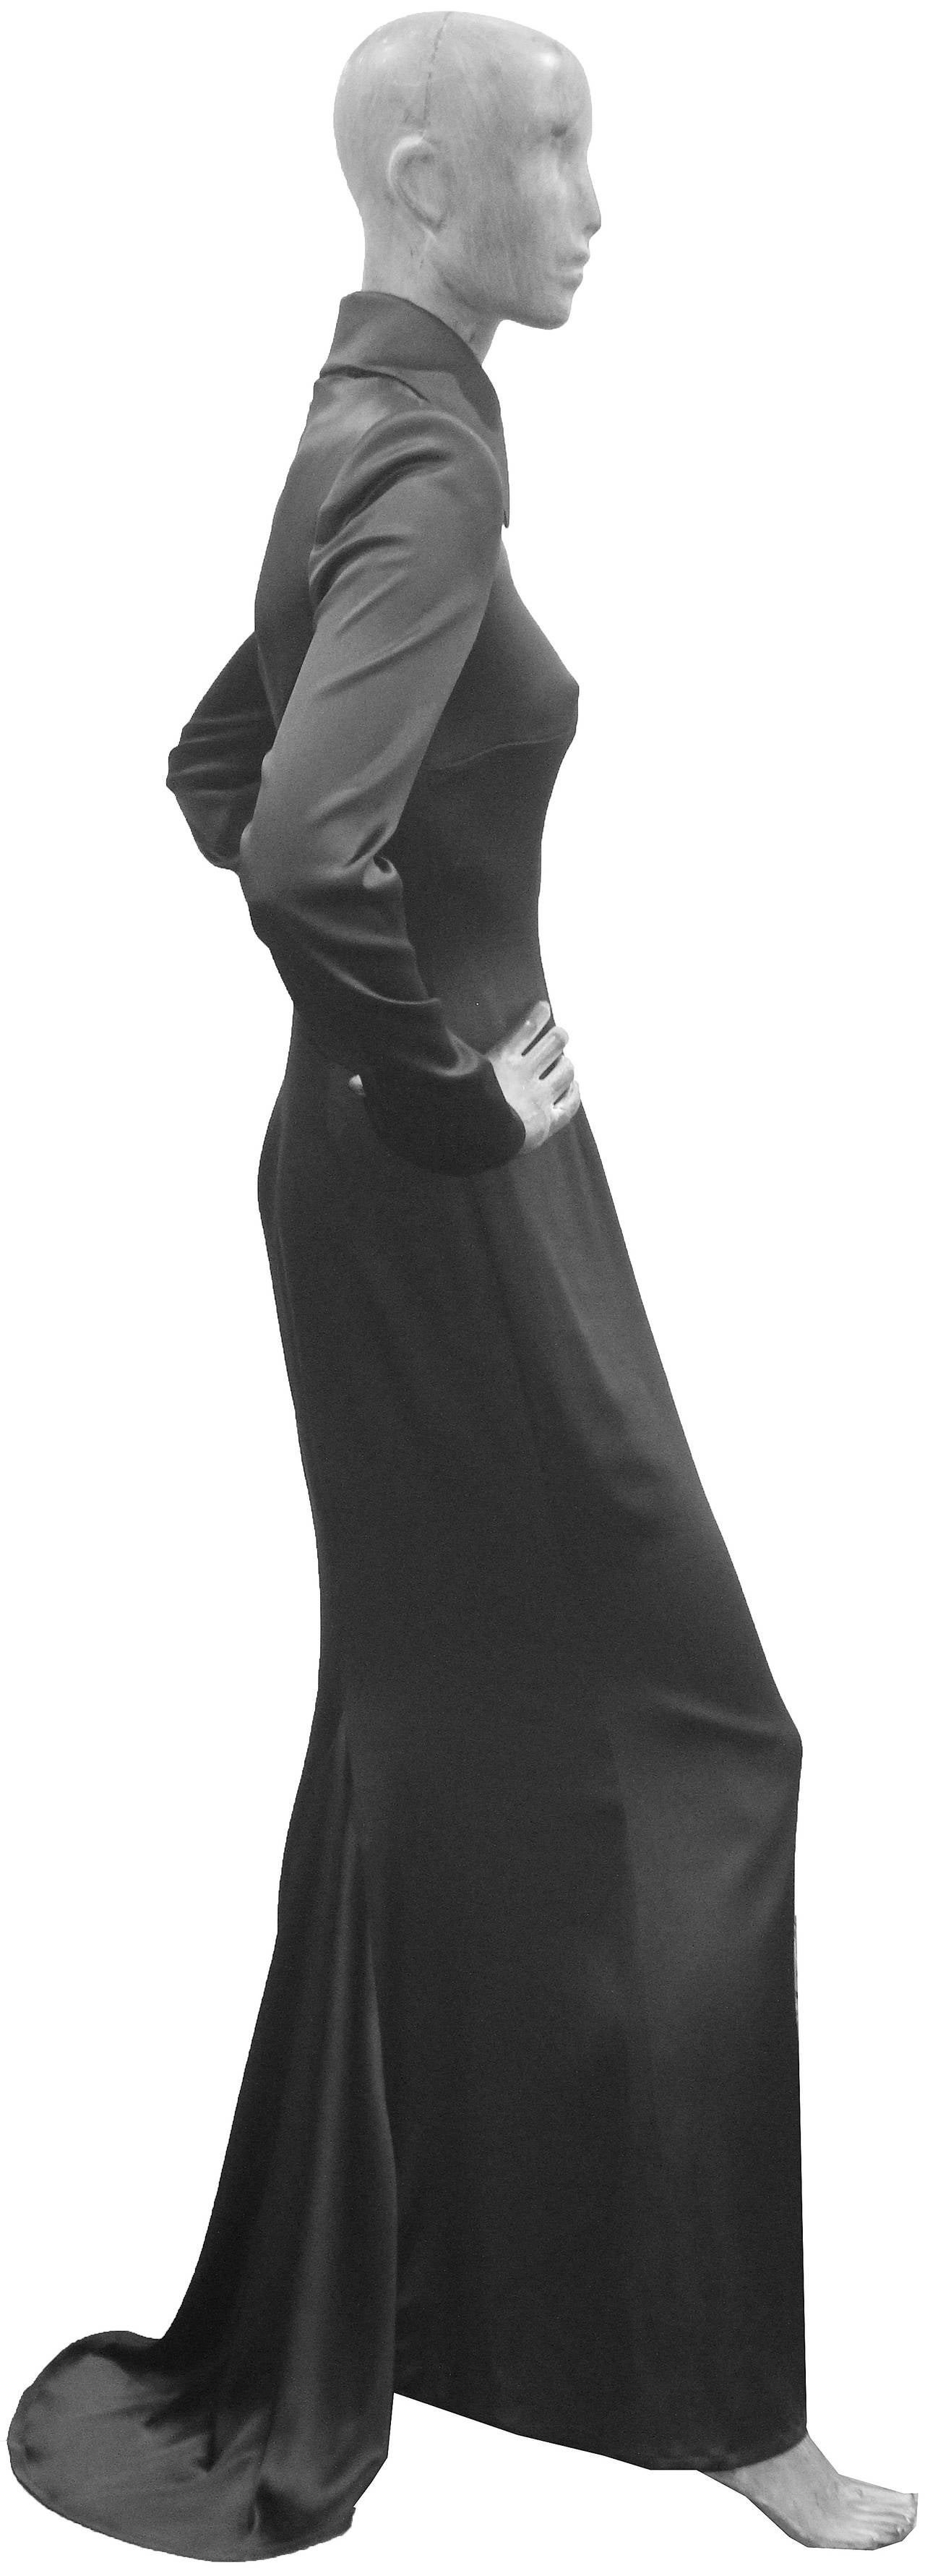 Gray 1990s Givenchy by Alexander McQueen Black Silk Evening Dress (Unworn) For Sale